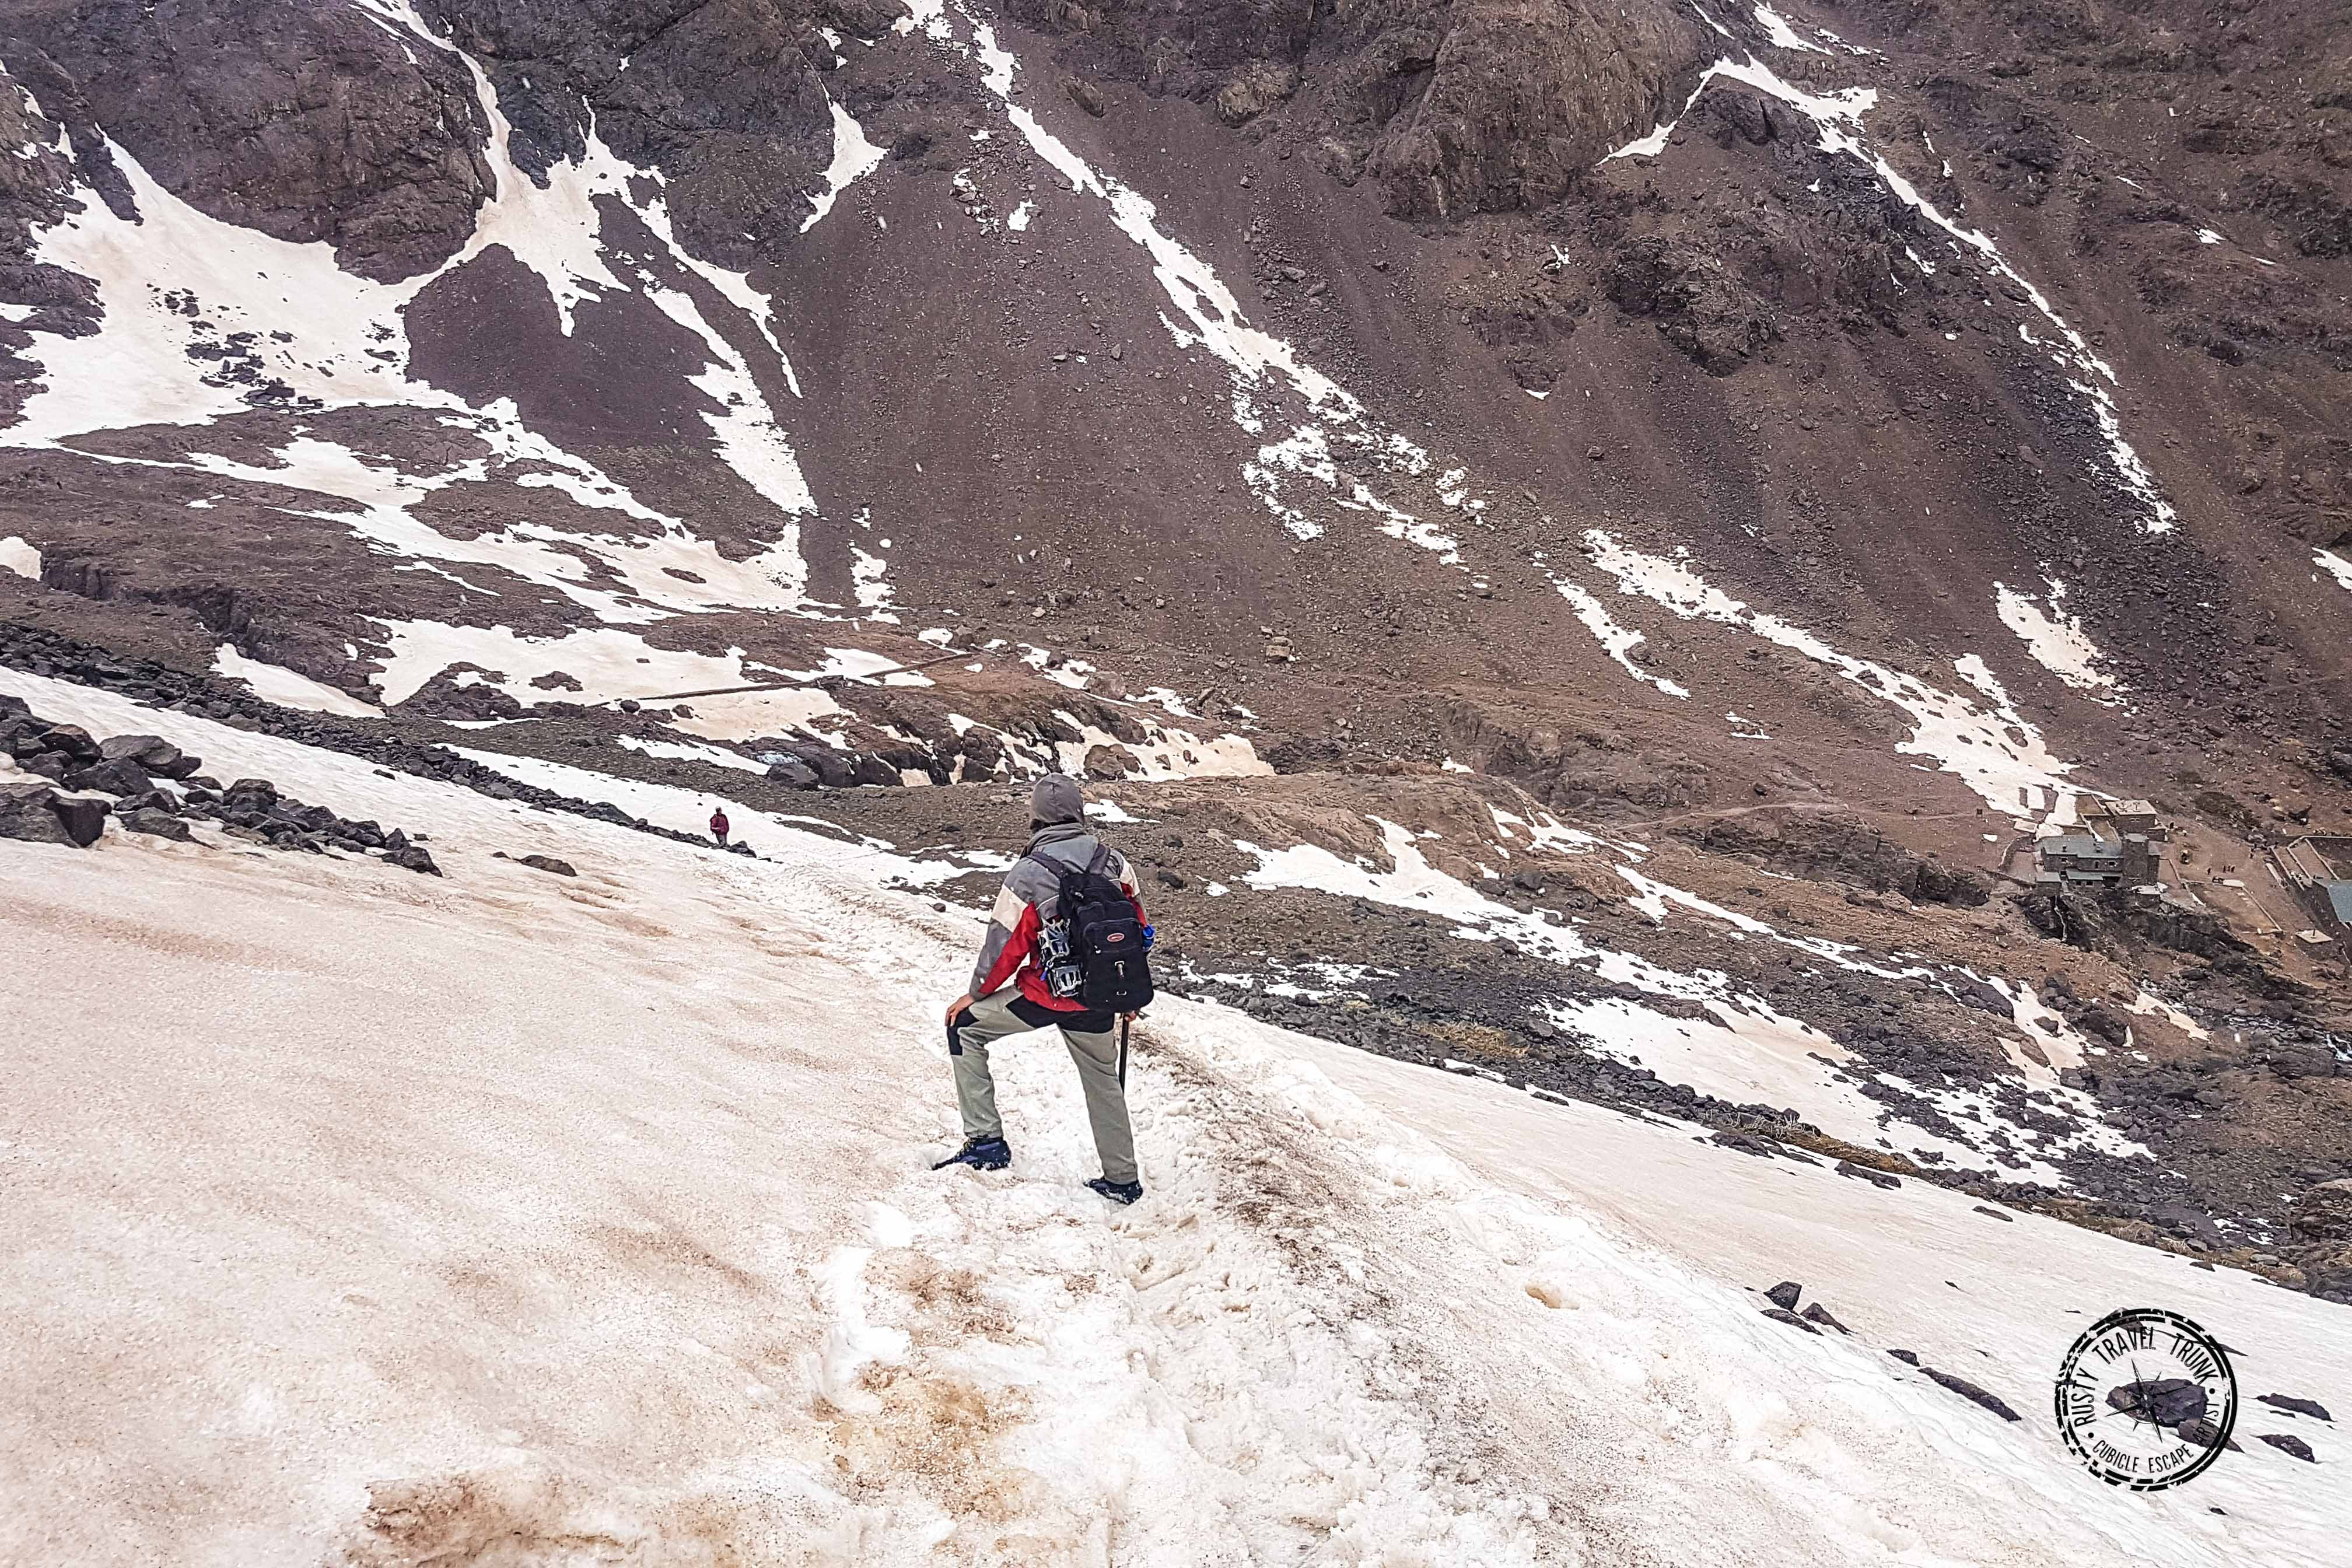 Atlas Mountains - Mount Toubkal